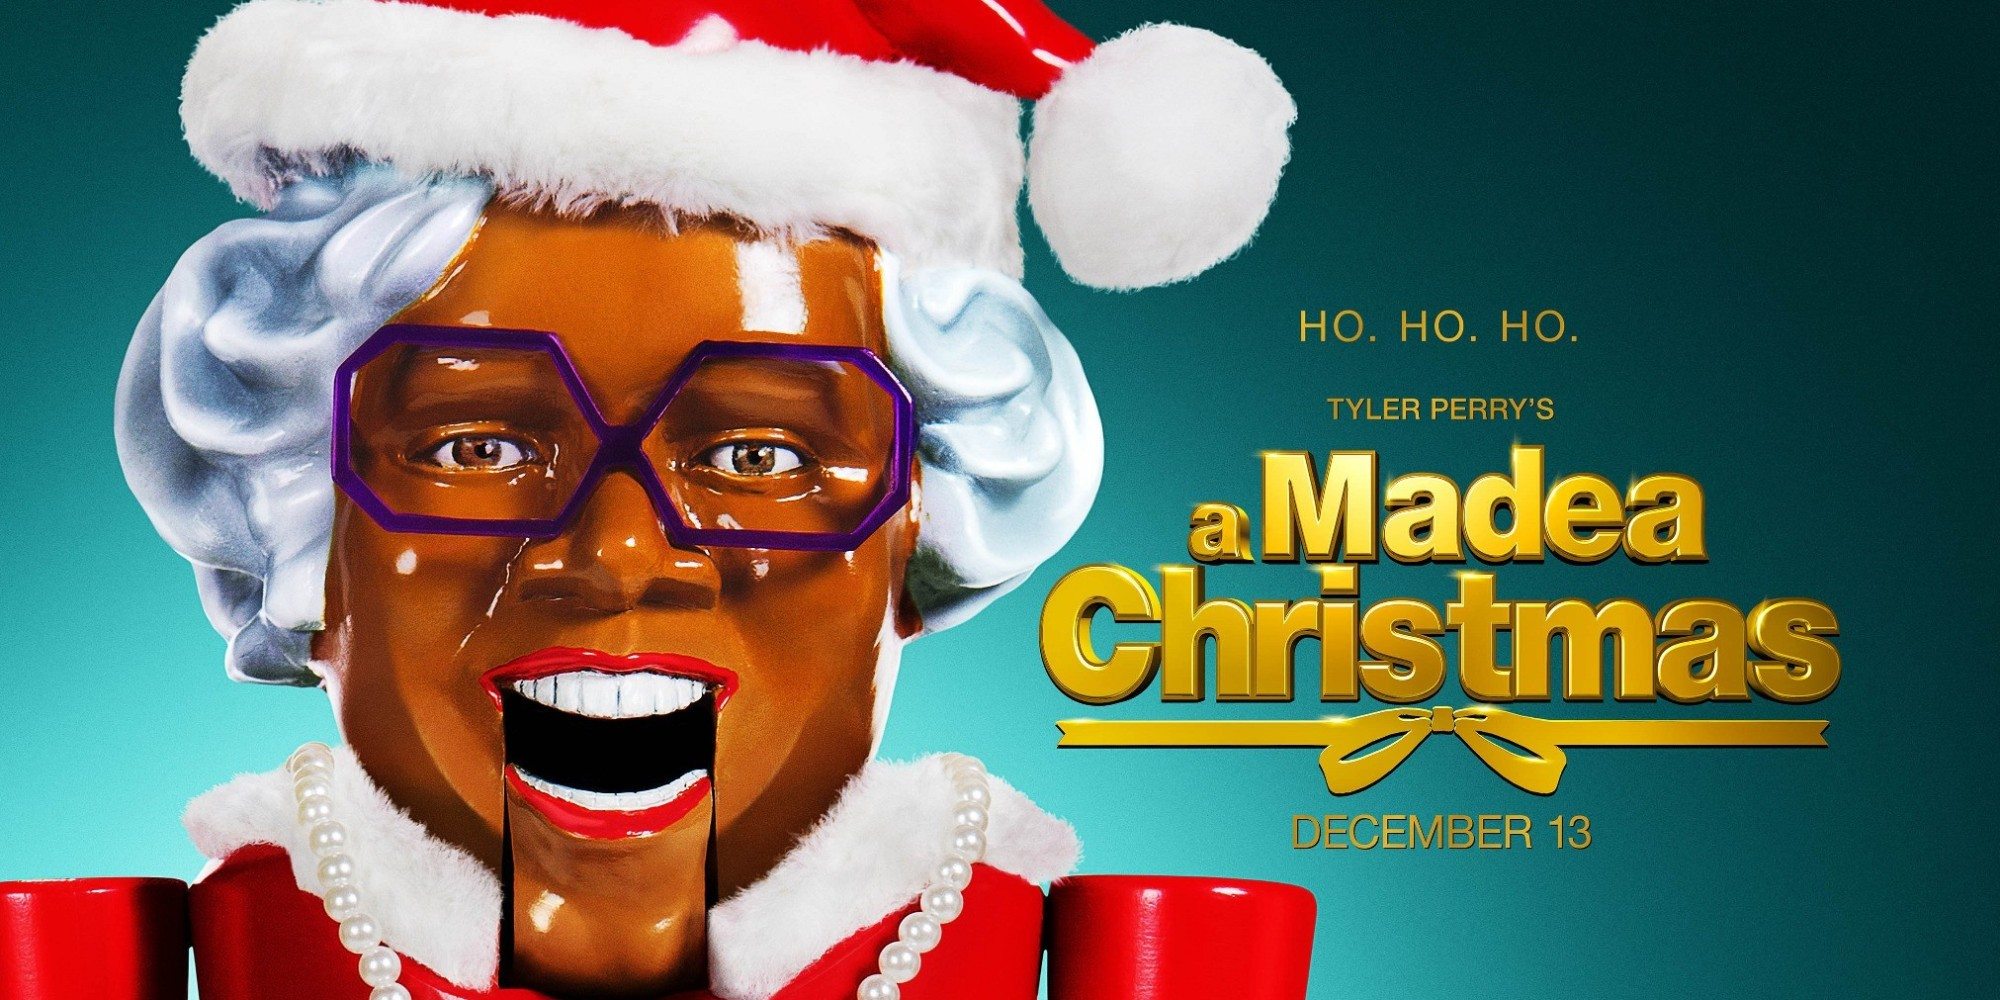 the impact of madea comedy and A madea halloween madea makes a perry's classic comedy make for an boo 2 to transcend the effects of its recent predecessors and.